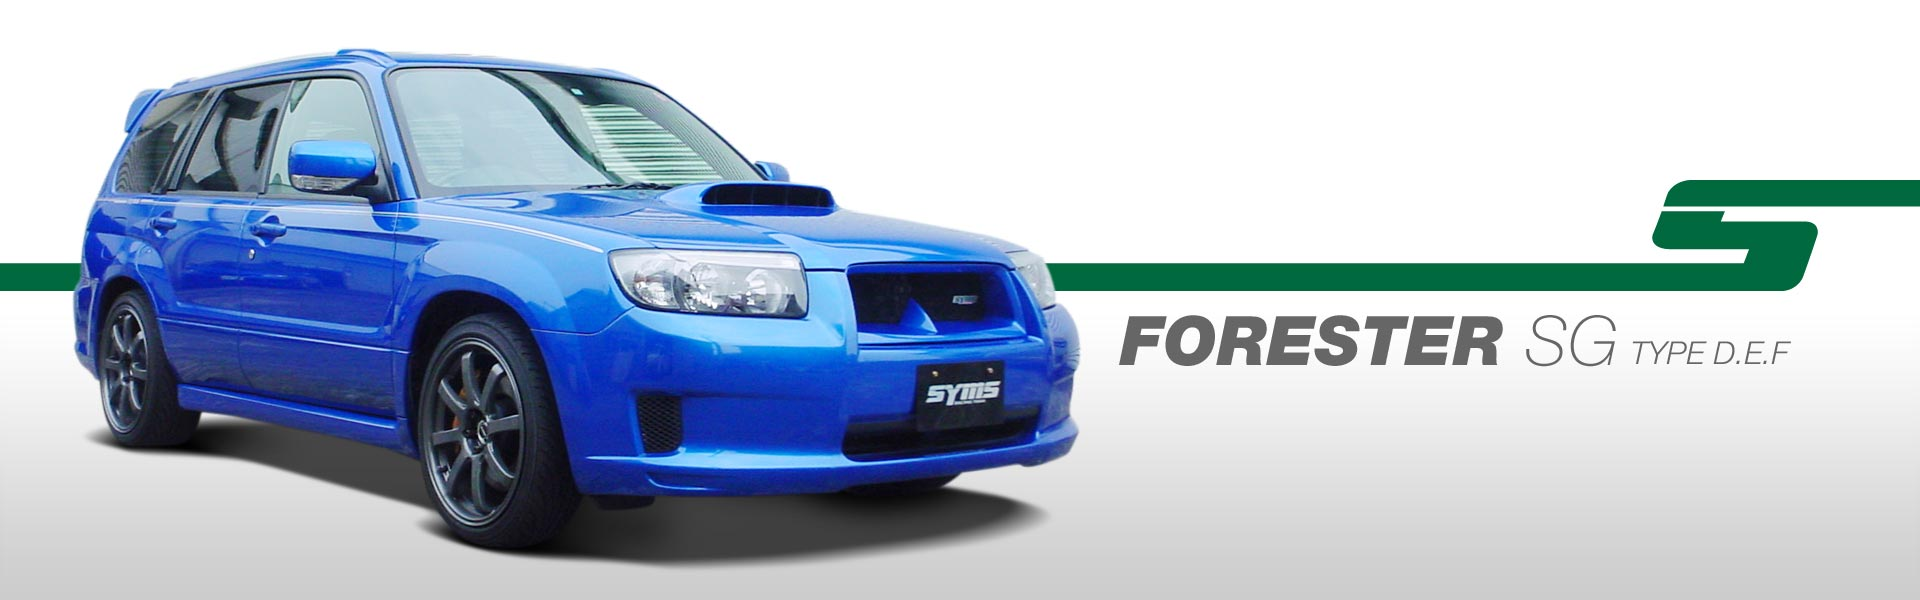 FORESTER - SG - TYPE D.E.F